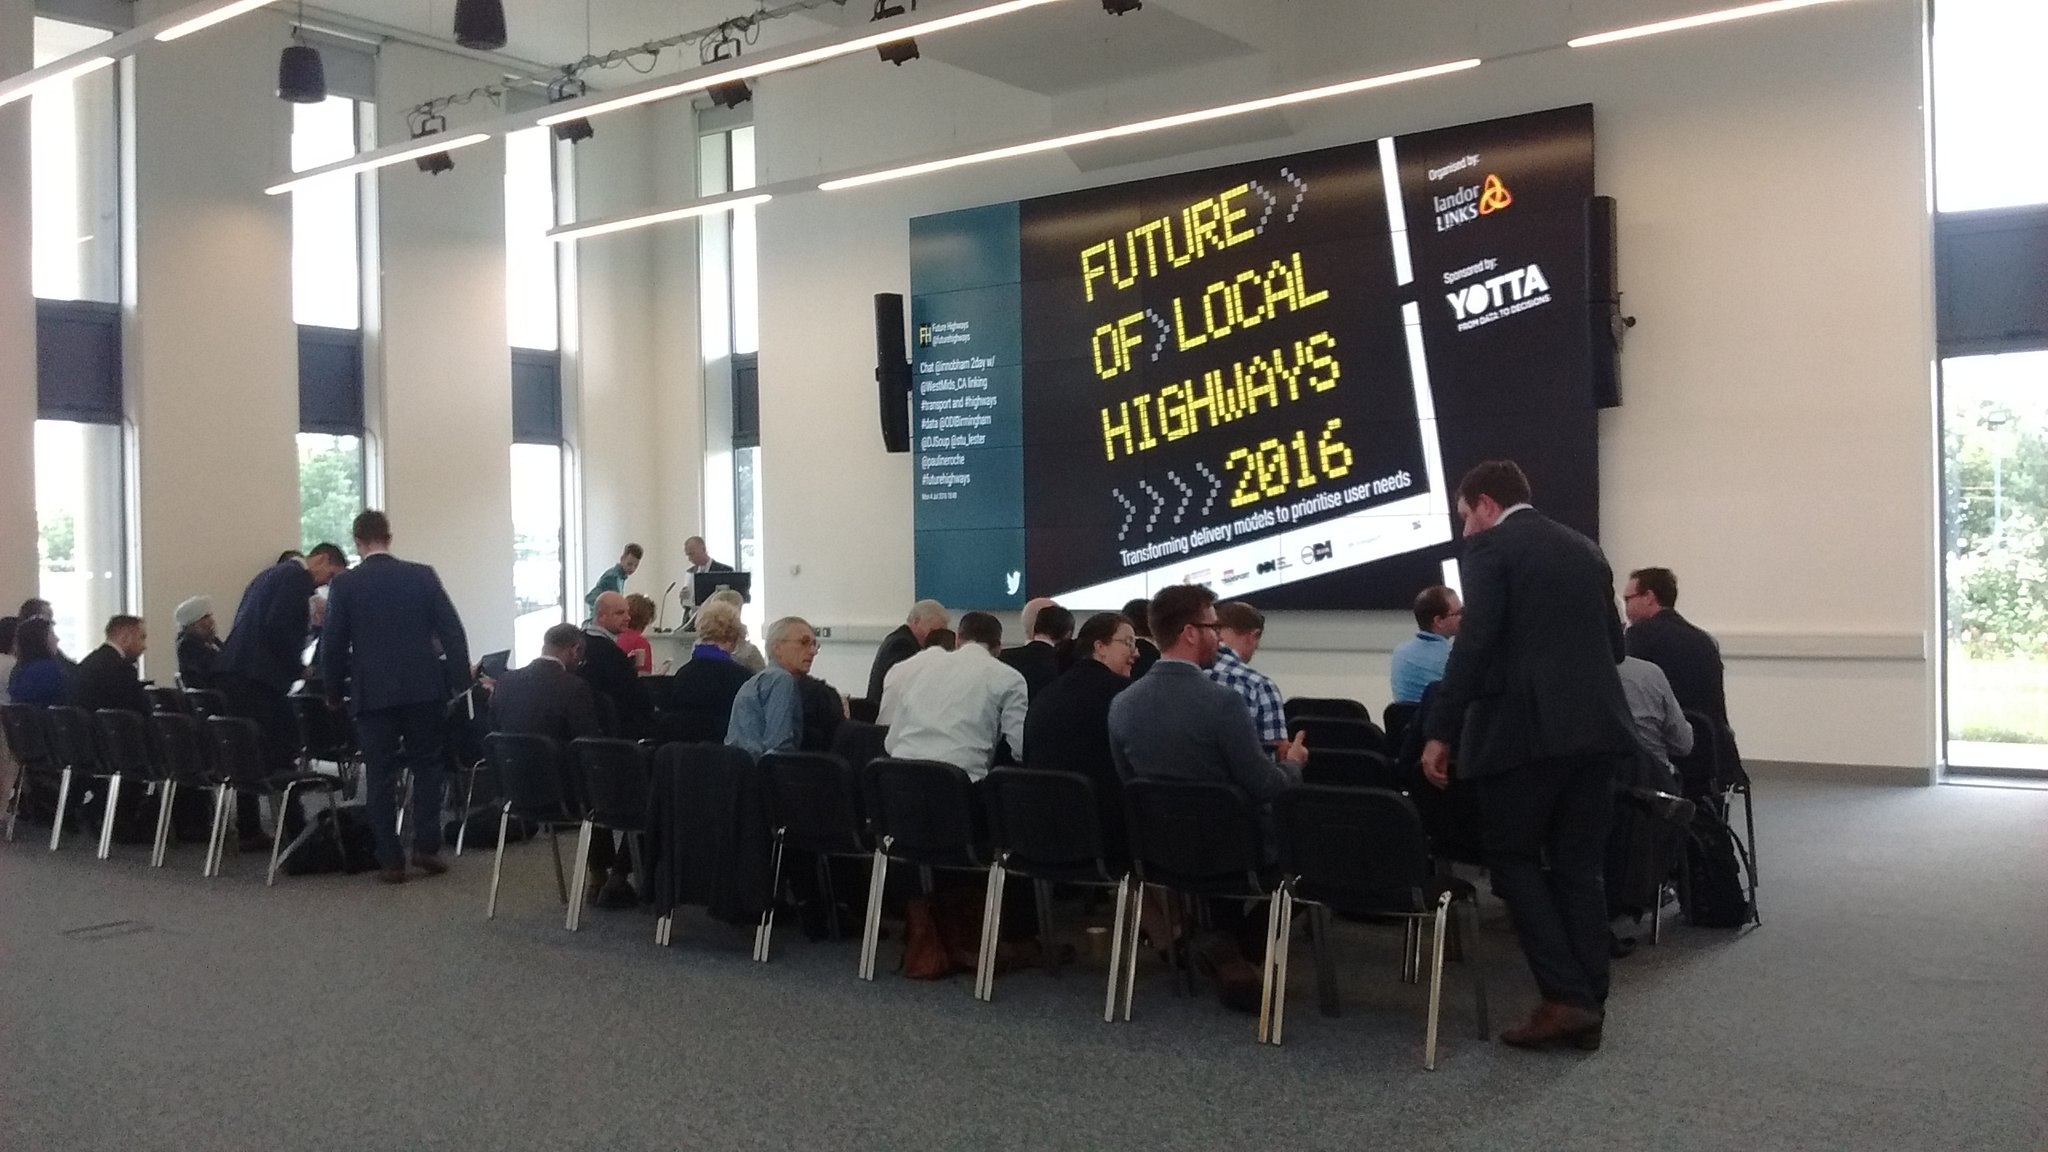 The #FutureHighways conference begins. https://t.co/Ybpt6URfzK